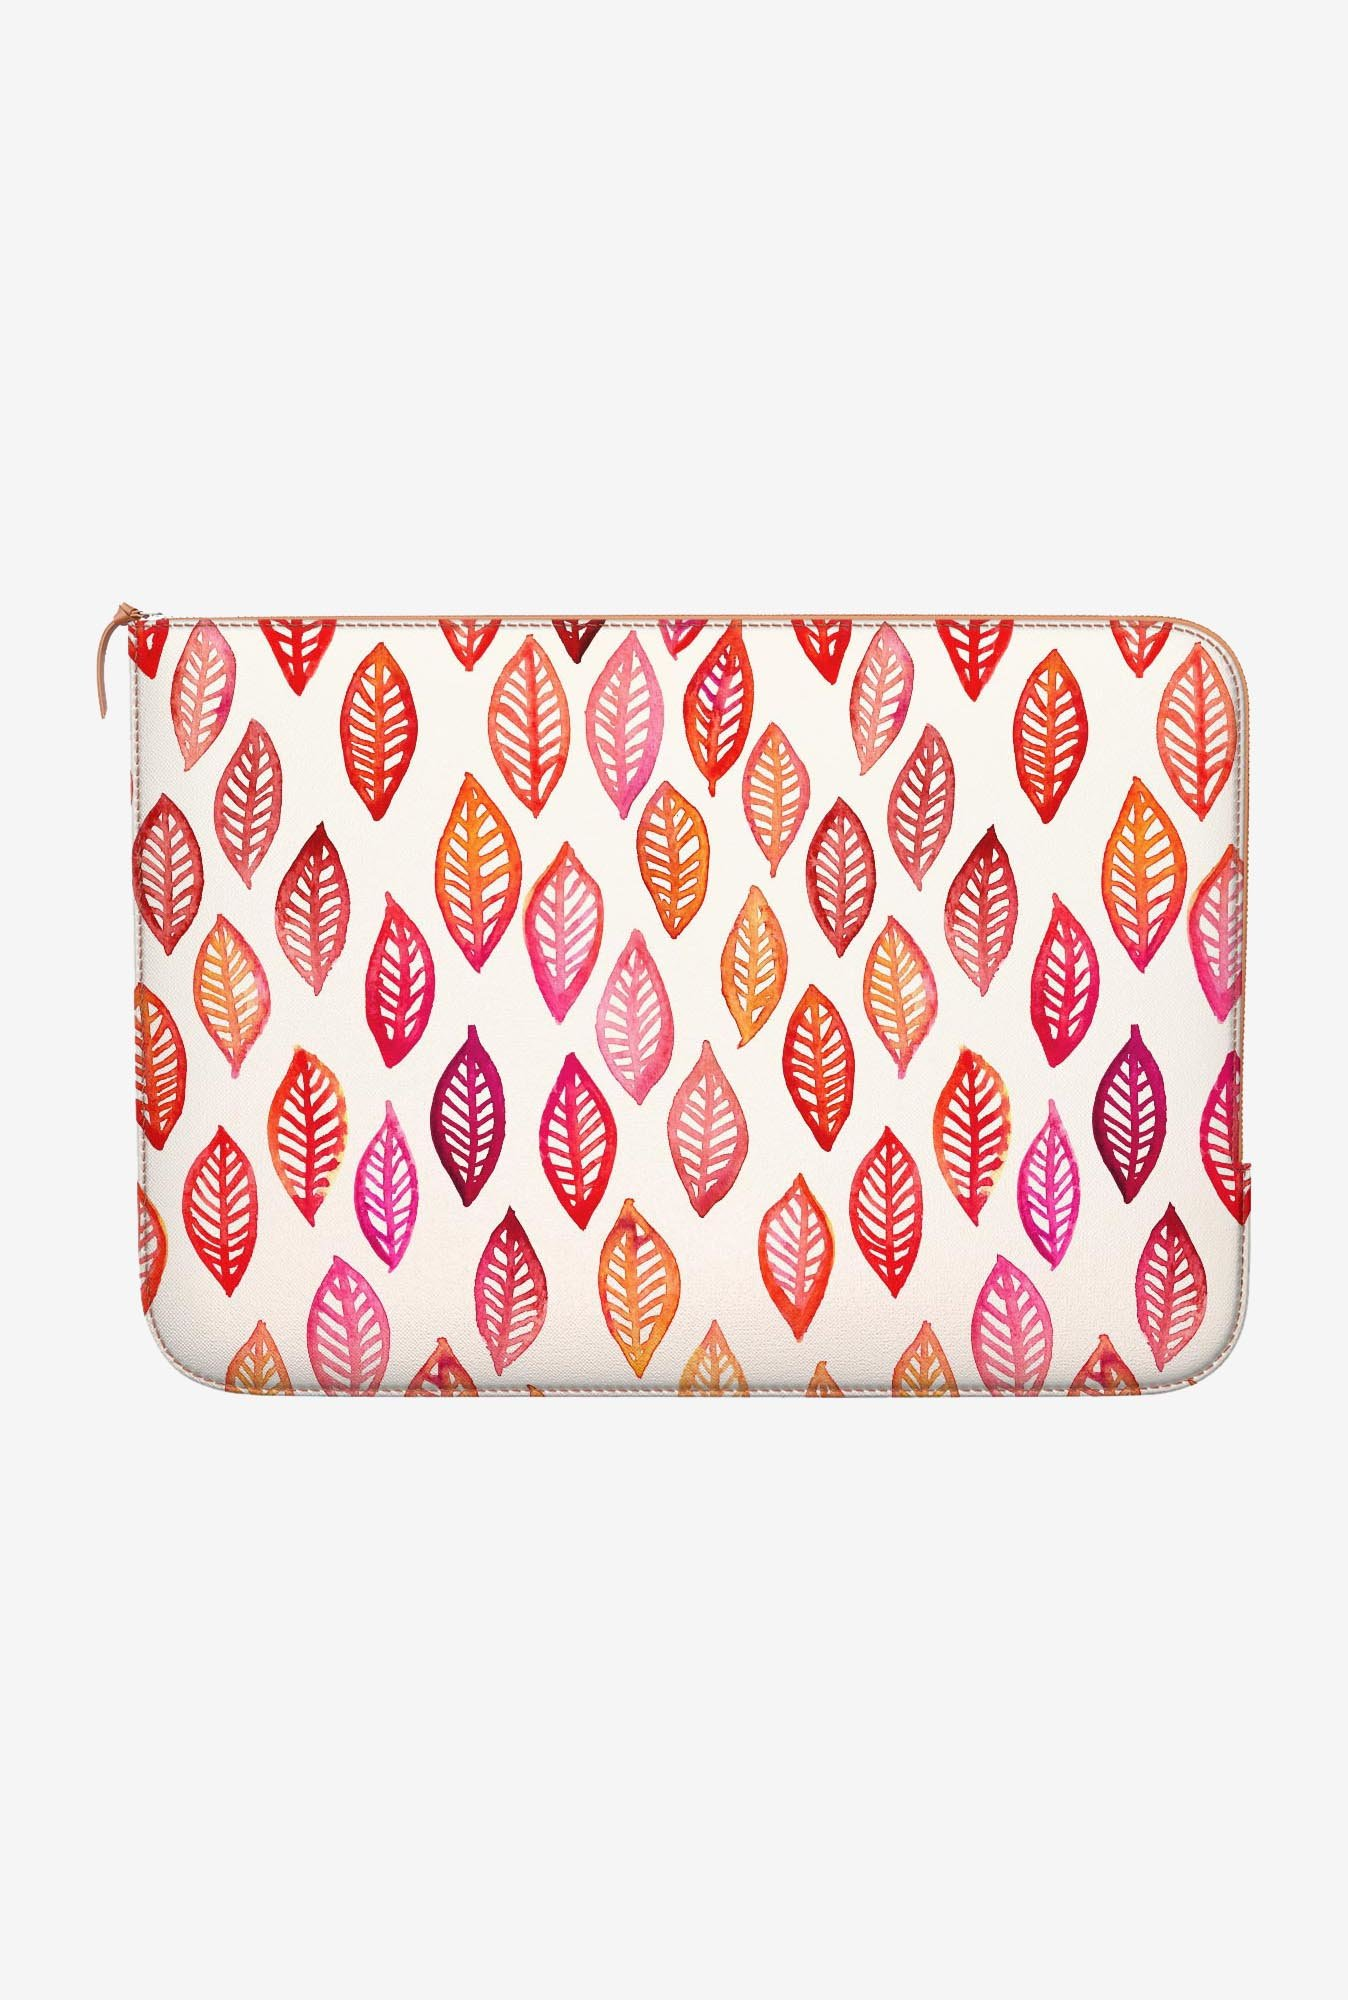 DailyObjects Autumn Leaves MacBook Pro 15 Zippered Sleeve